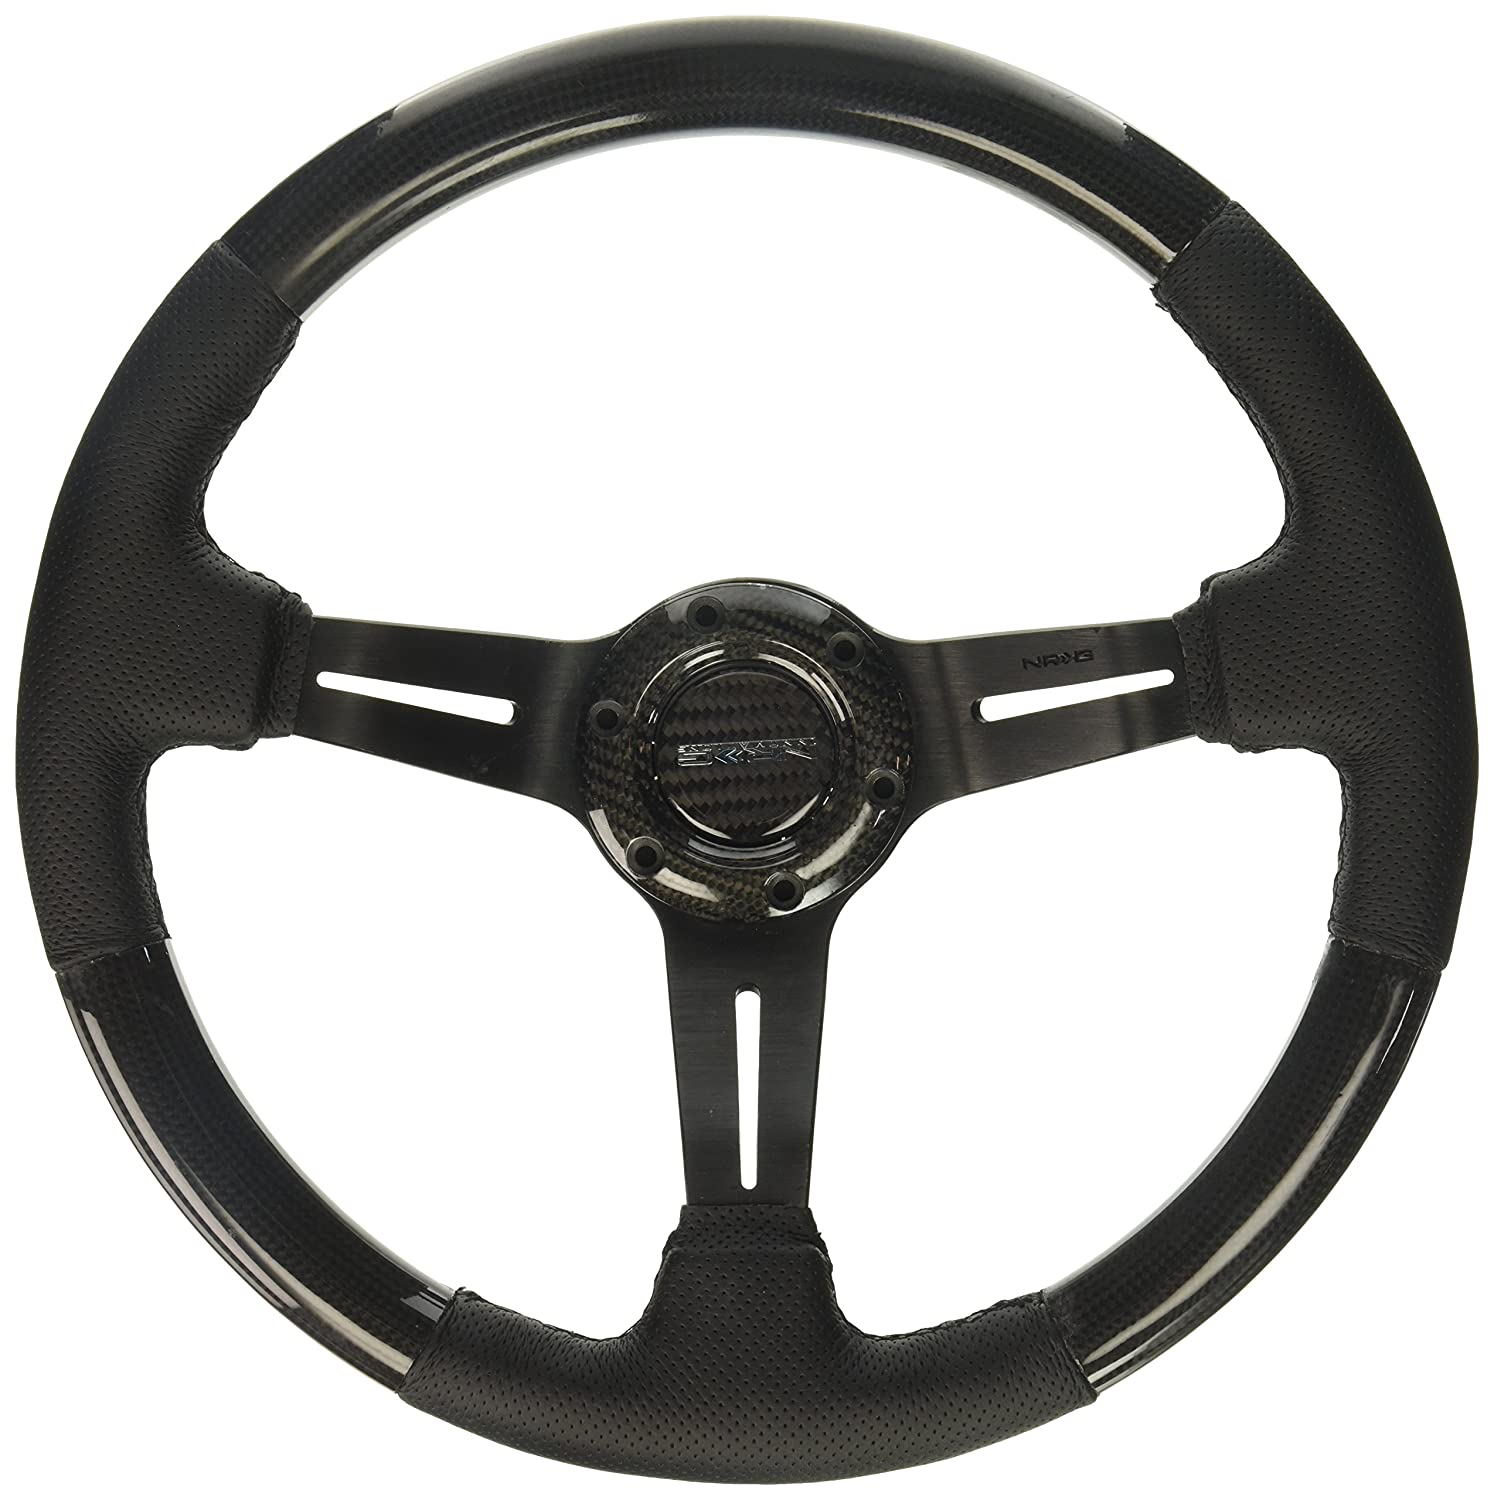 NRG Innovations ST-010CFBS Carbon Fiber Steering Wheel with Leather Accent 350mm 1.5 Deep Black Stitching